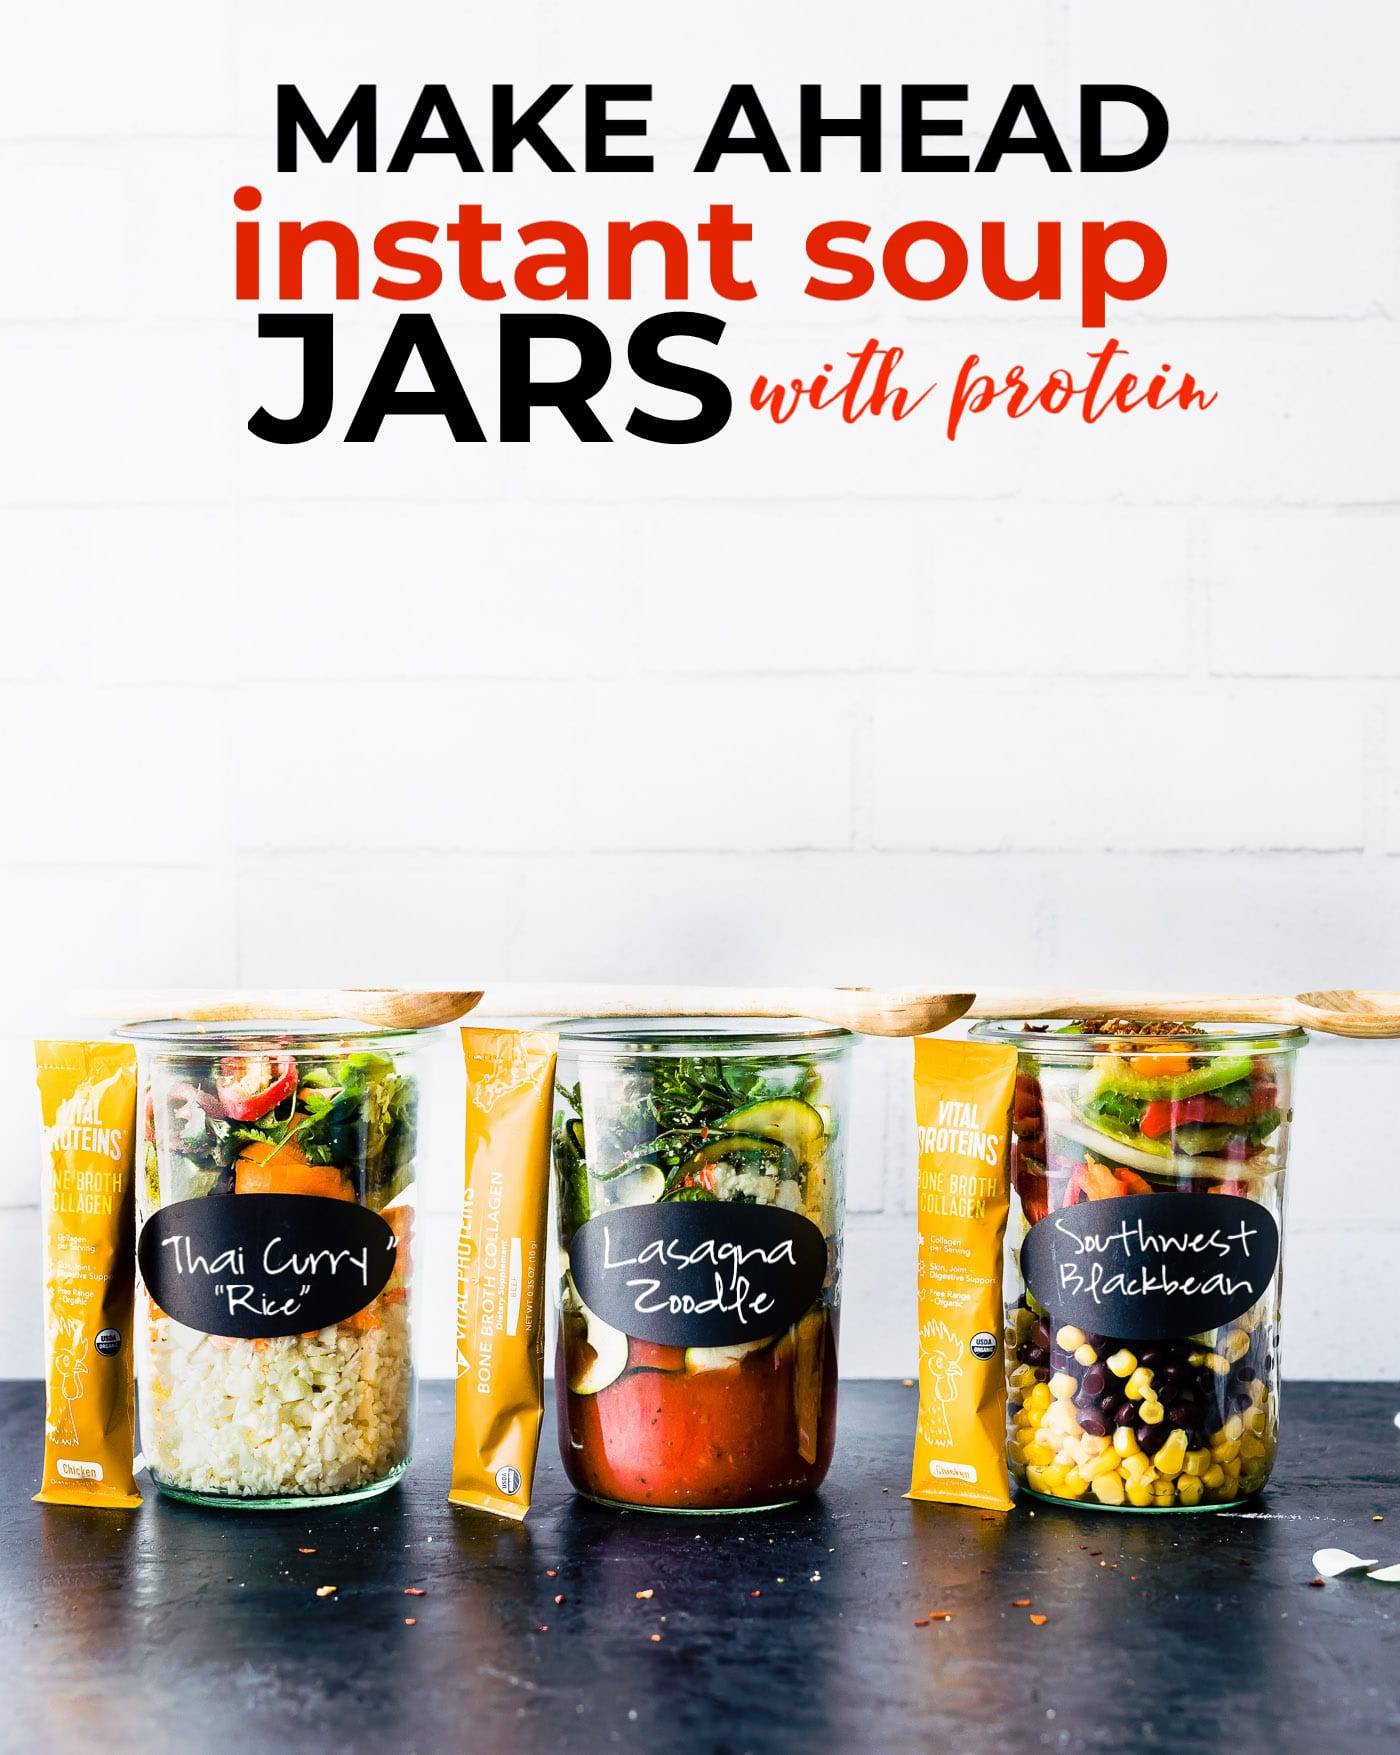 titled photo (and shown): Make Ahead Instant Soup Jars with Protein